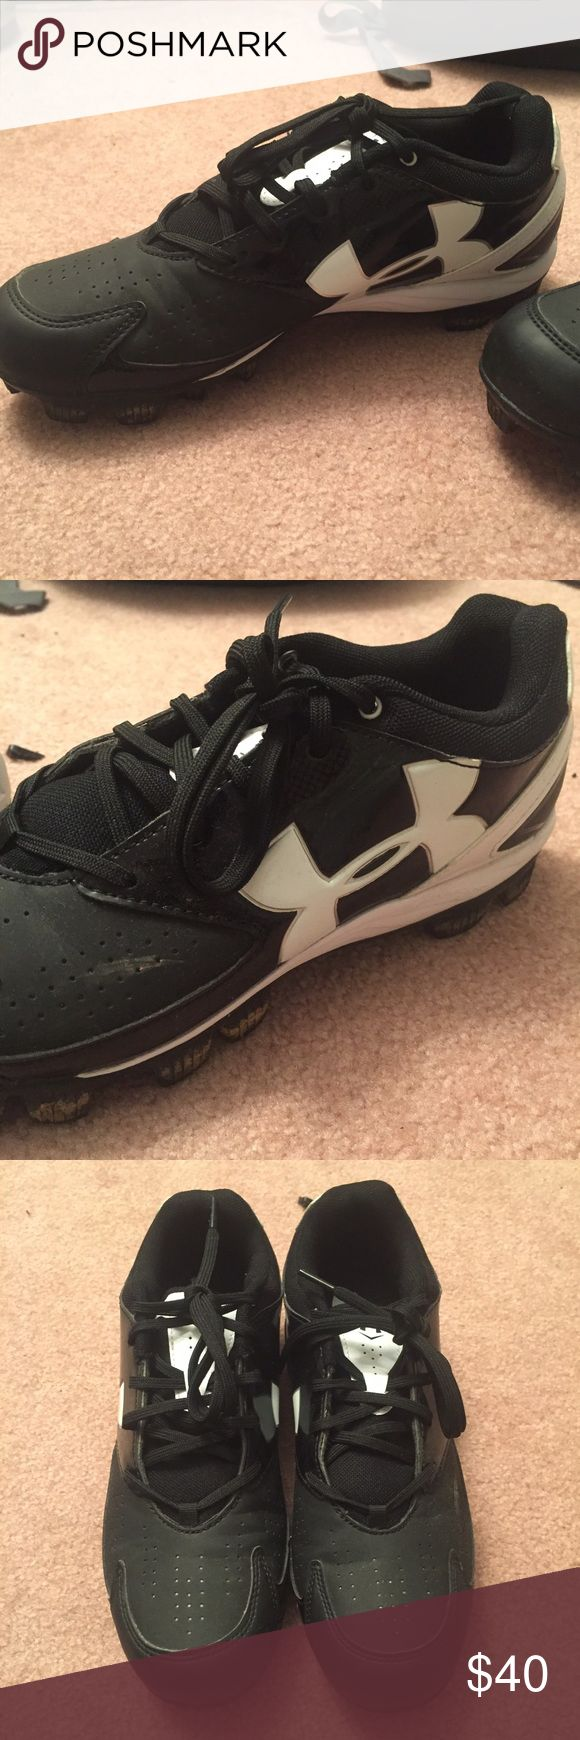 Under Armer Softball Cleats black and white. great condition. worn once. Women's 8.5. Make me offers👍🏻 Under Armour Shoes Athletic Shoes